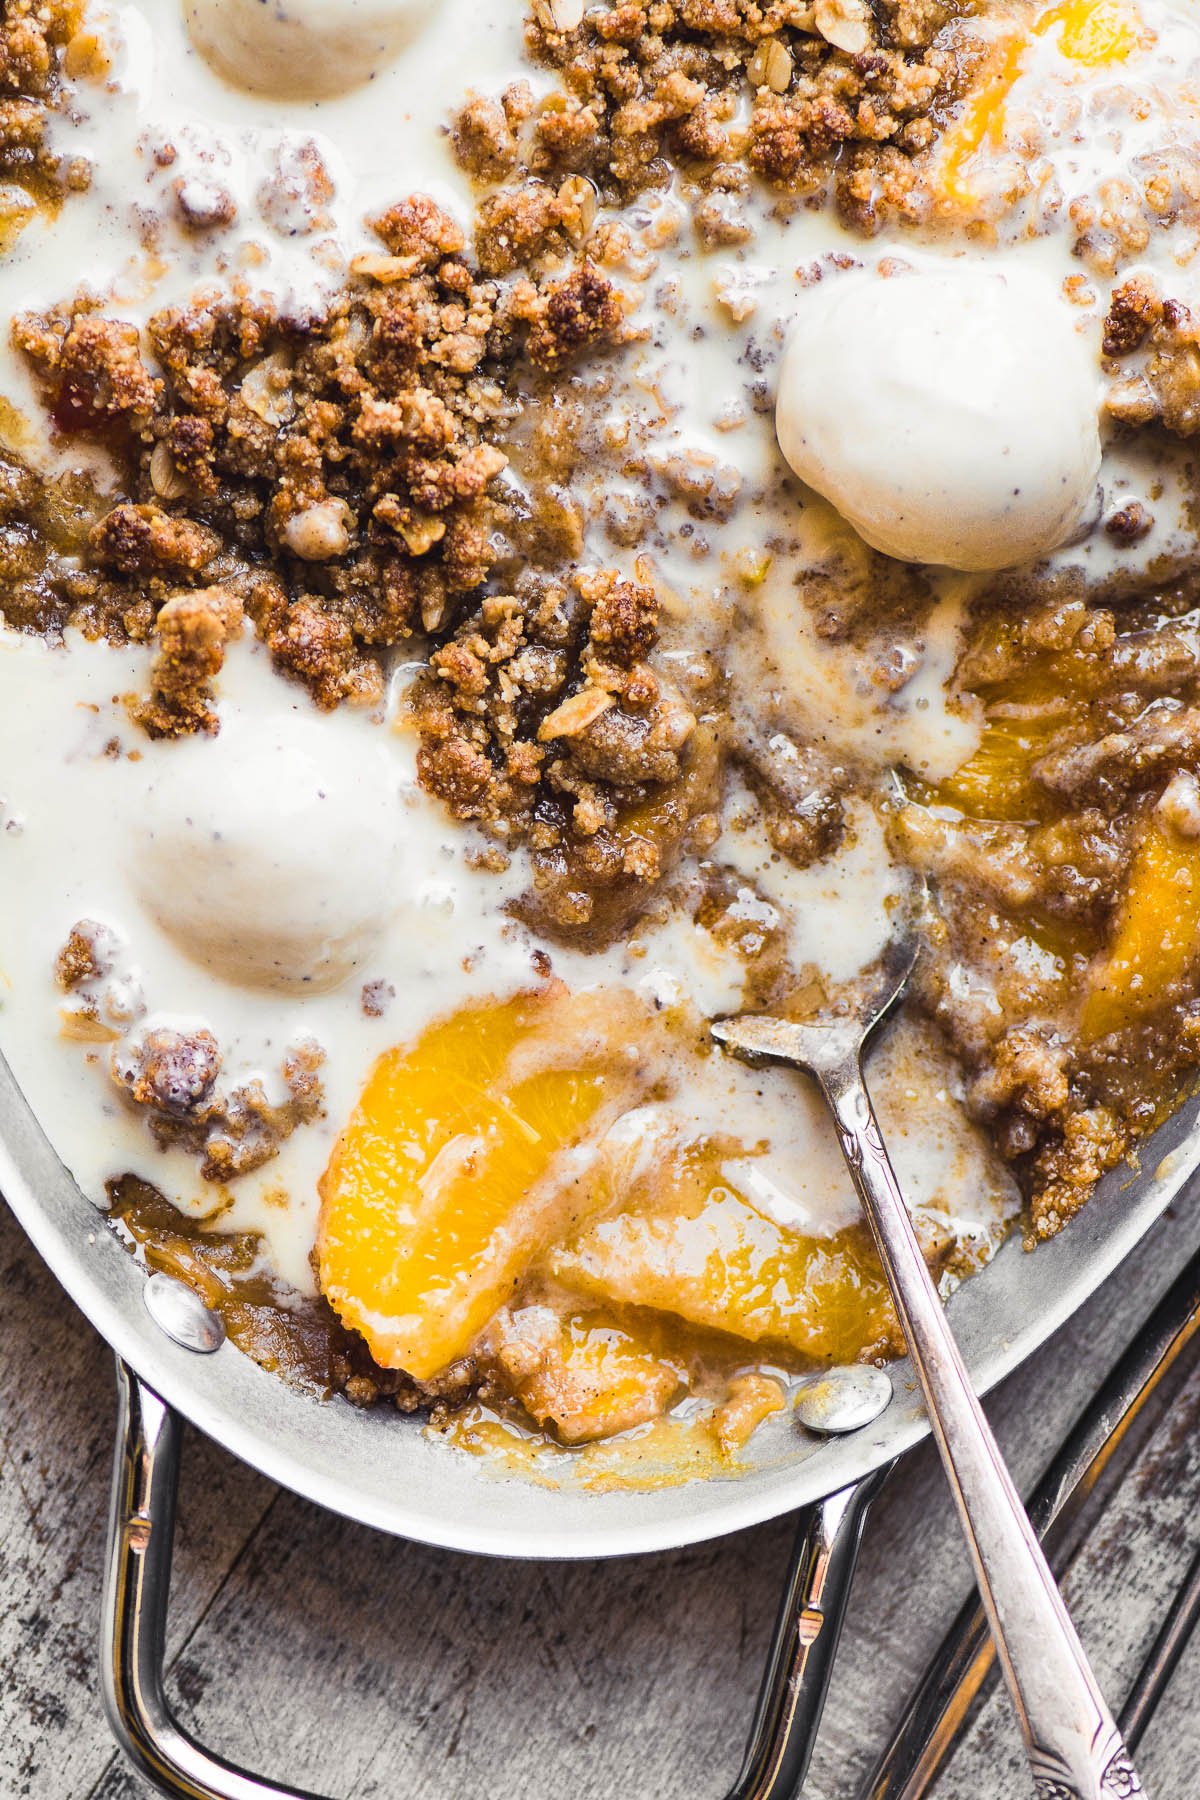 gluten free spiced peach crisp in a pan with melting ice cream